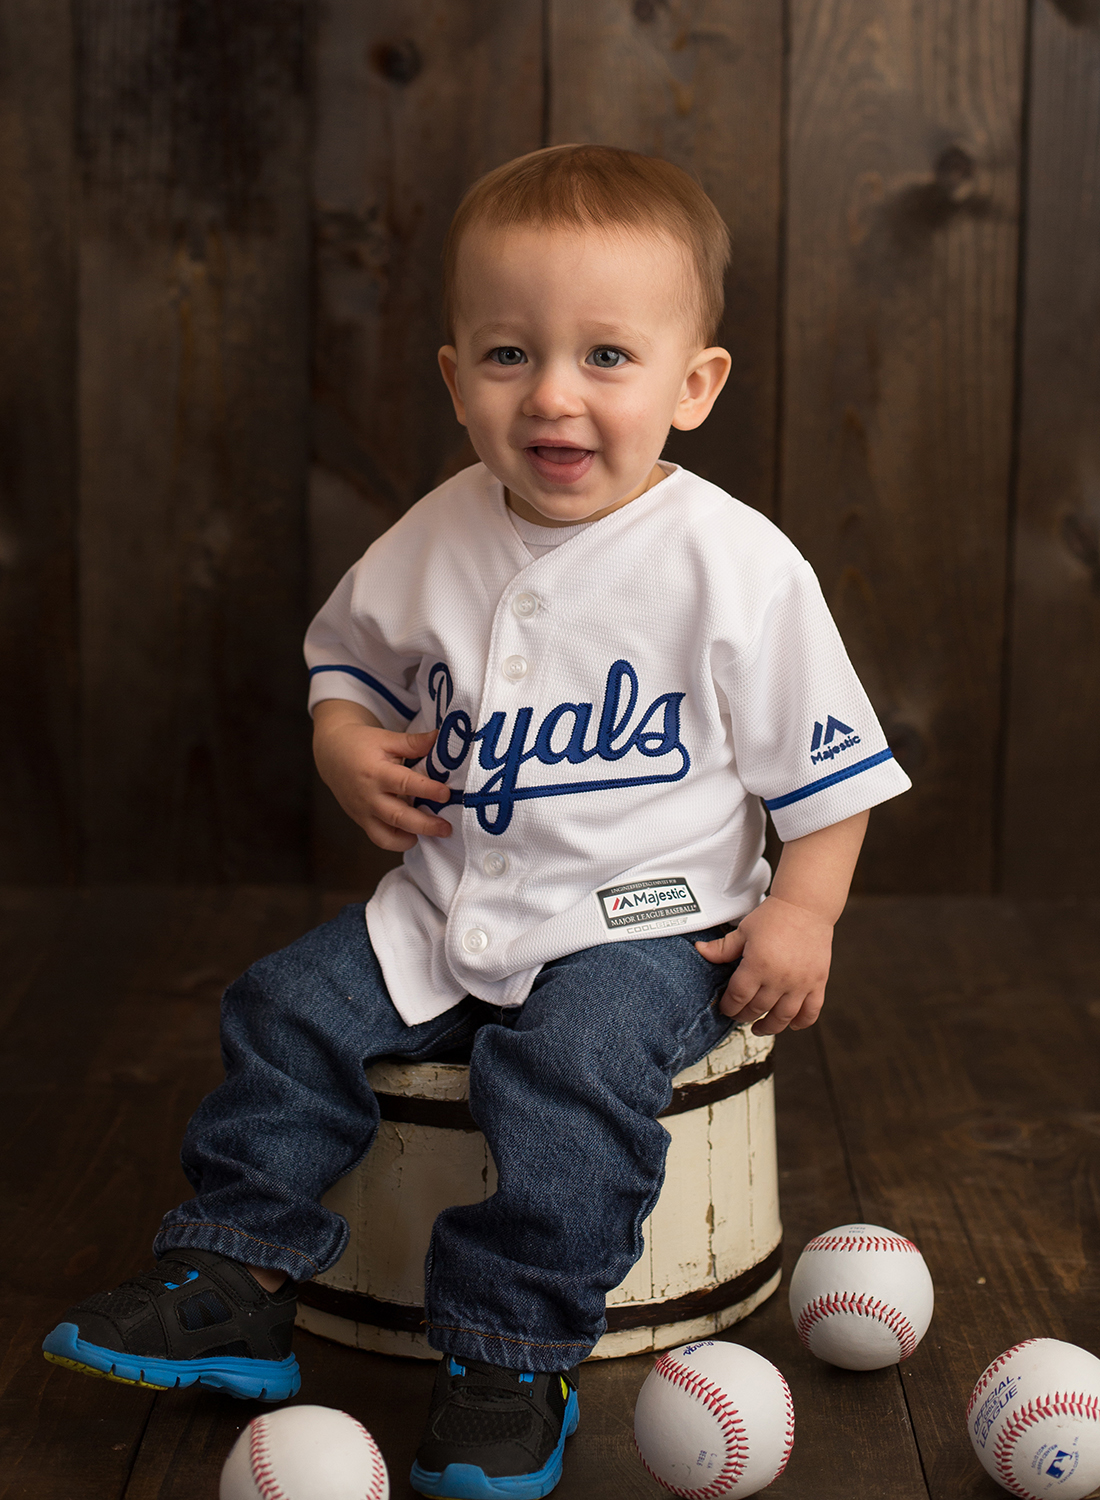 kansas city royals baby picture - baby with baseball photos - johnson county kansas baby studio - cute baby pictures